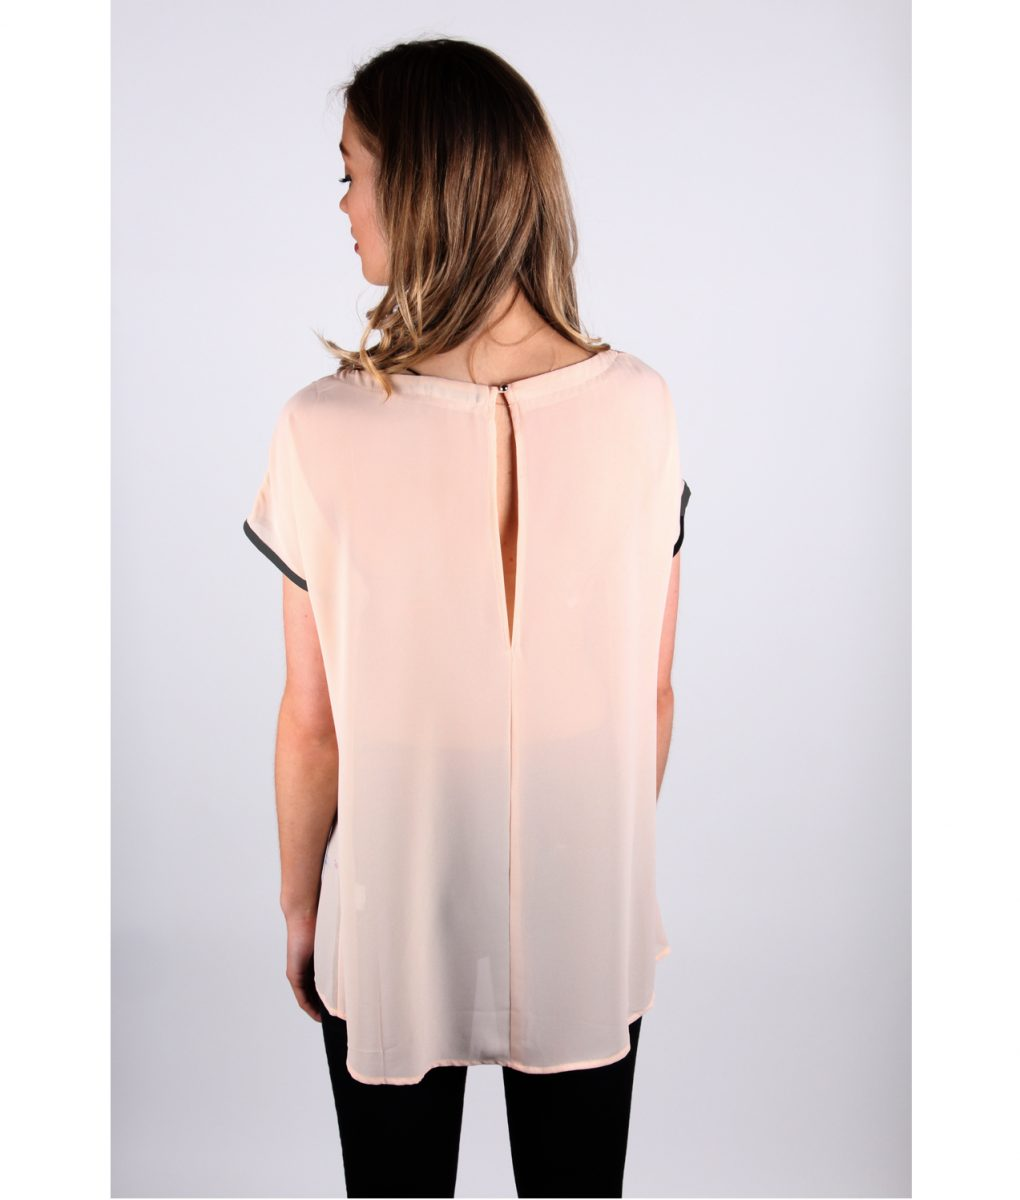 French Alila Peachy pattern top back